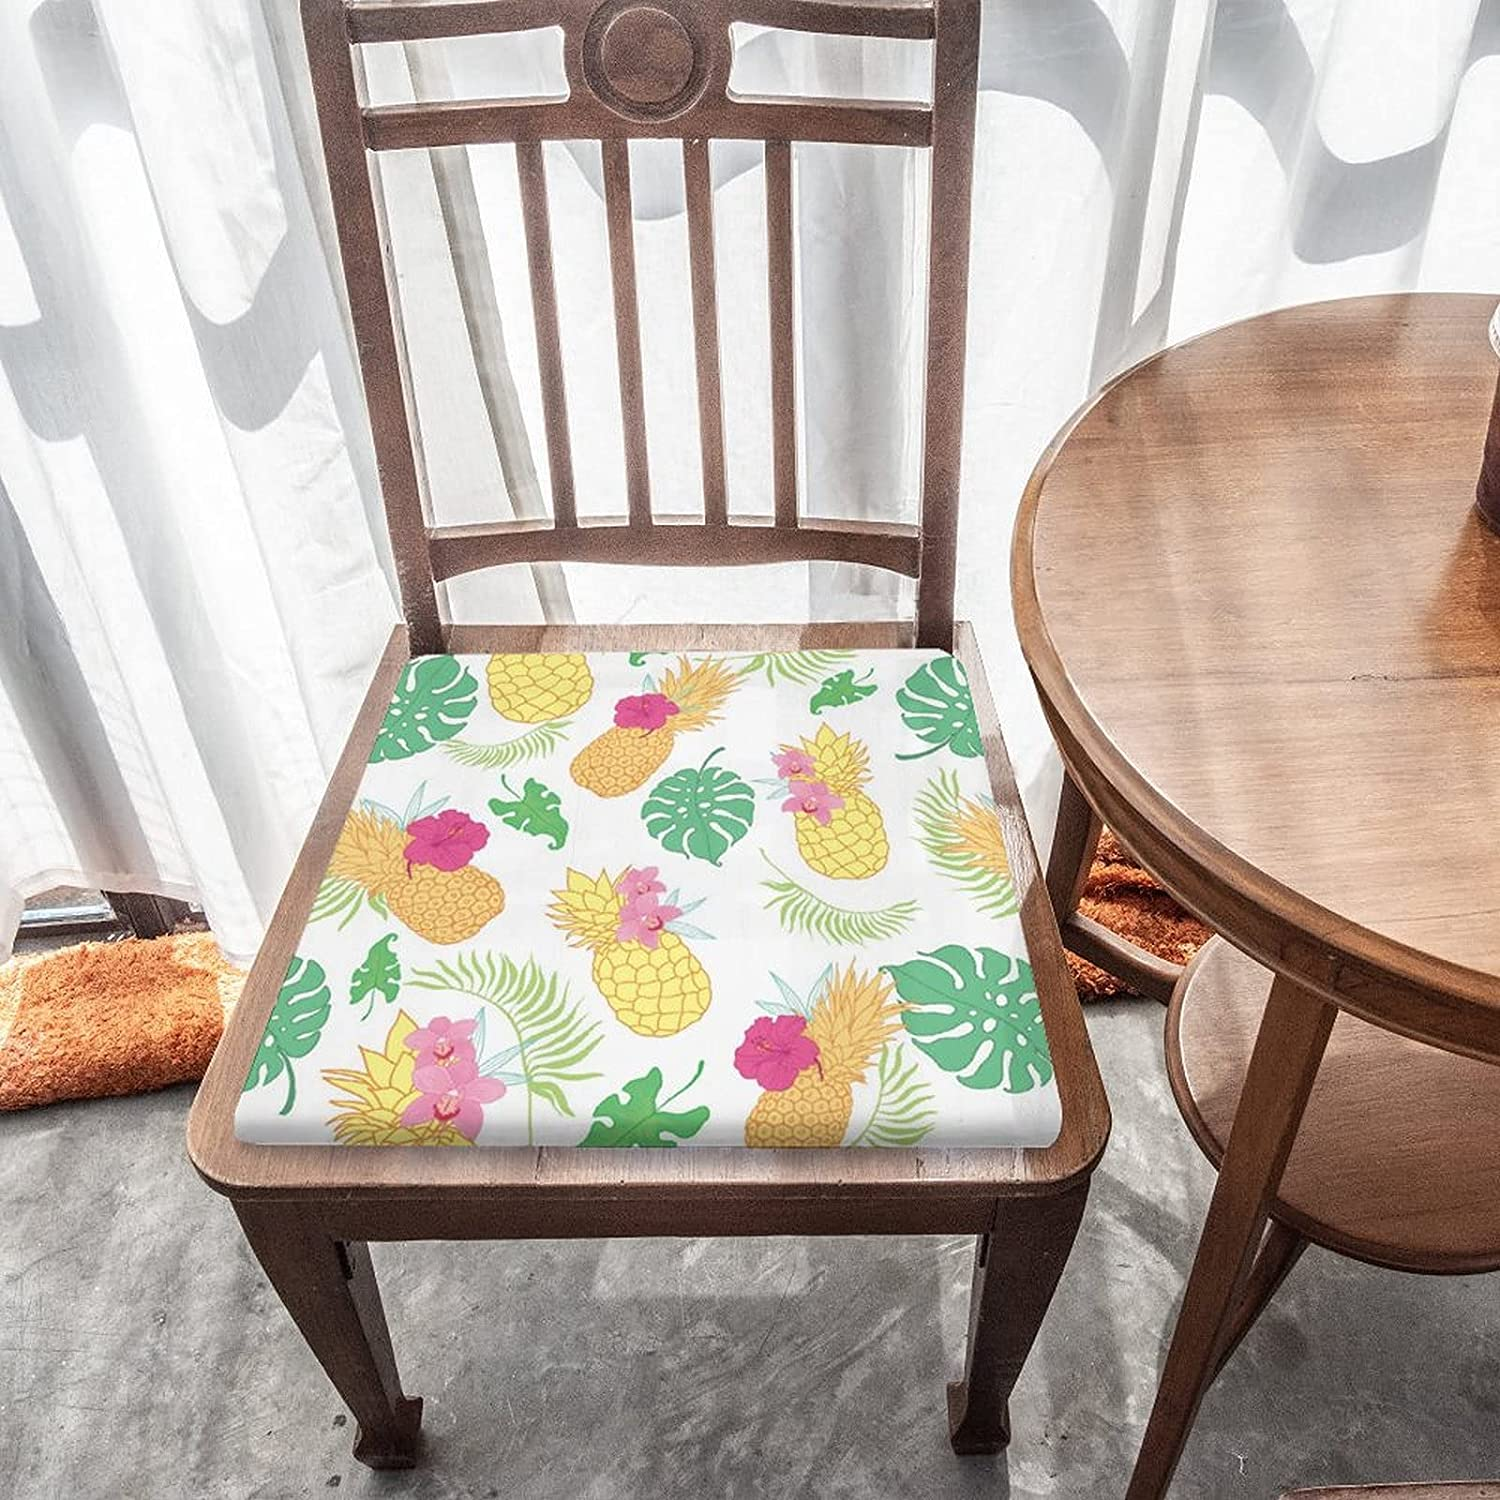 Tropical Pineapples Flowers Outdoor Indoor Seat Cushion Regular store Re Max 51% OFF Chair